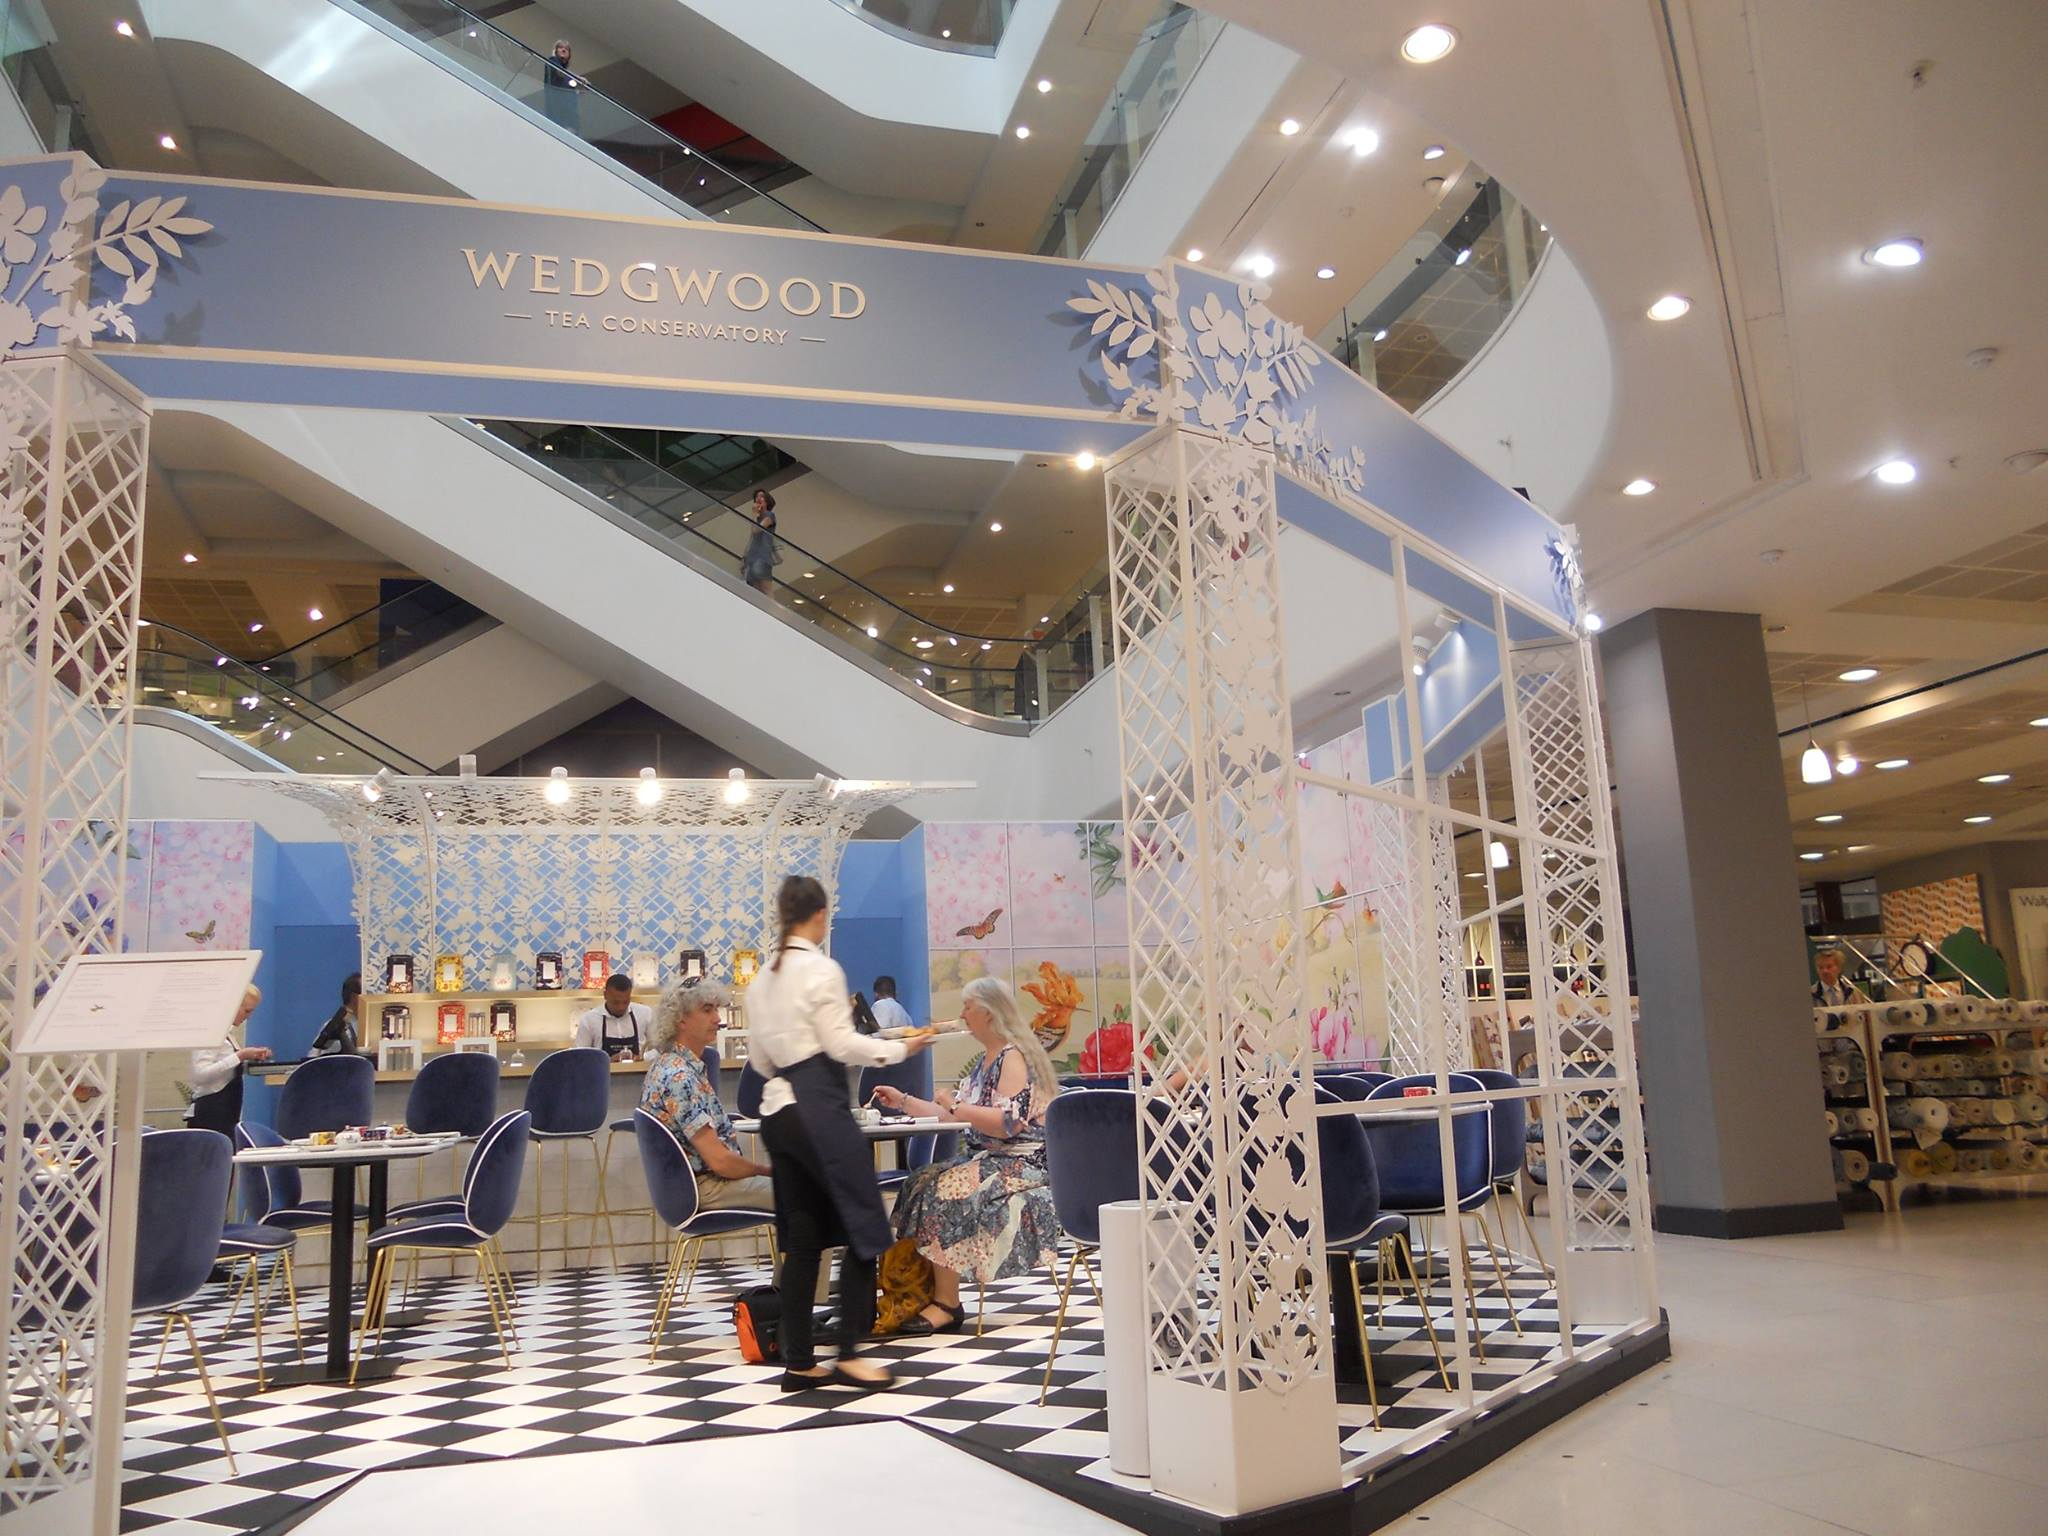 tasty-tasteful-wedgwood-conservatory-culture